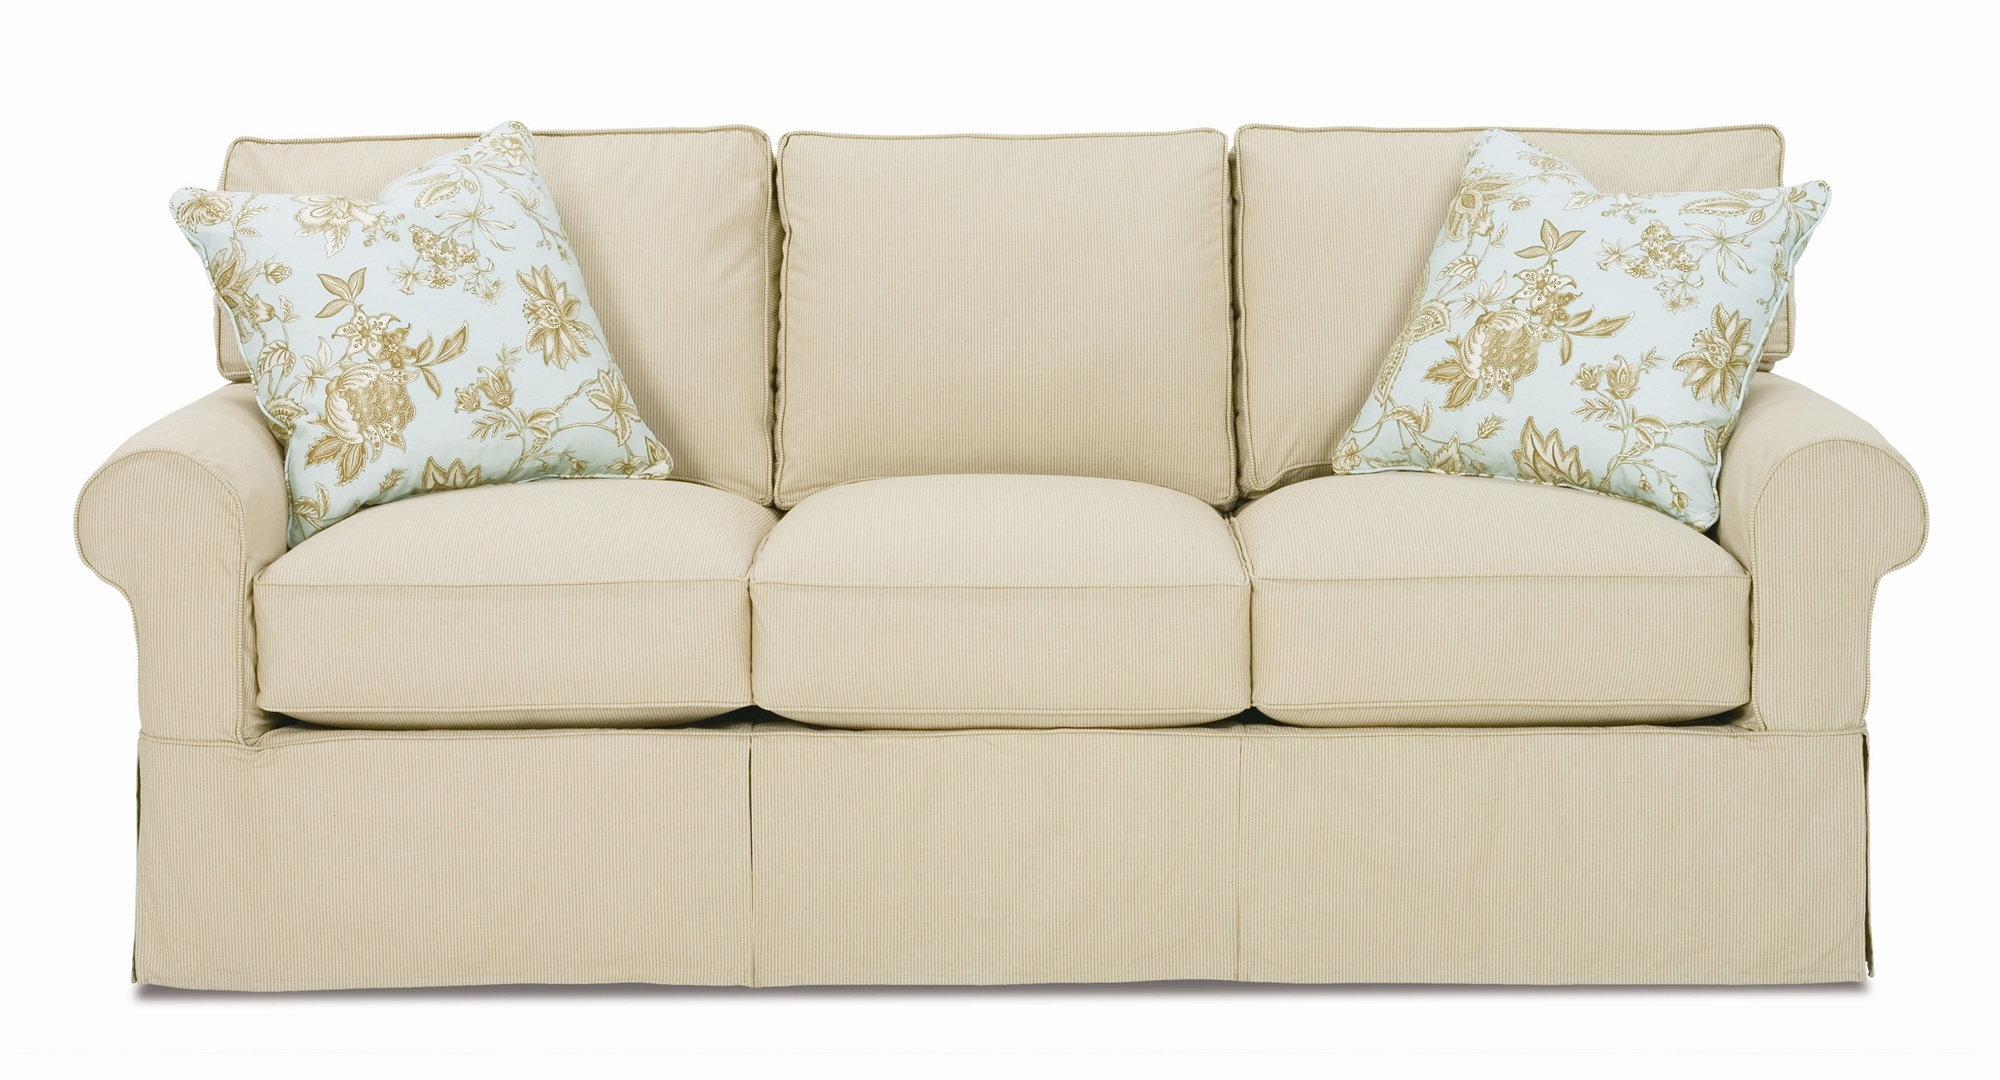 good sofa covers set deals in hyderabad high quality slipcovers design ready made